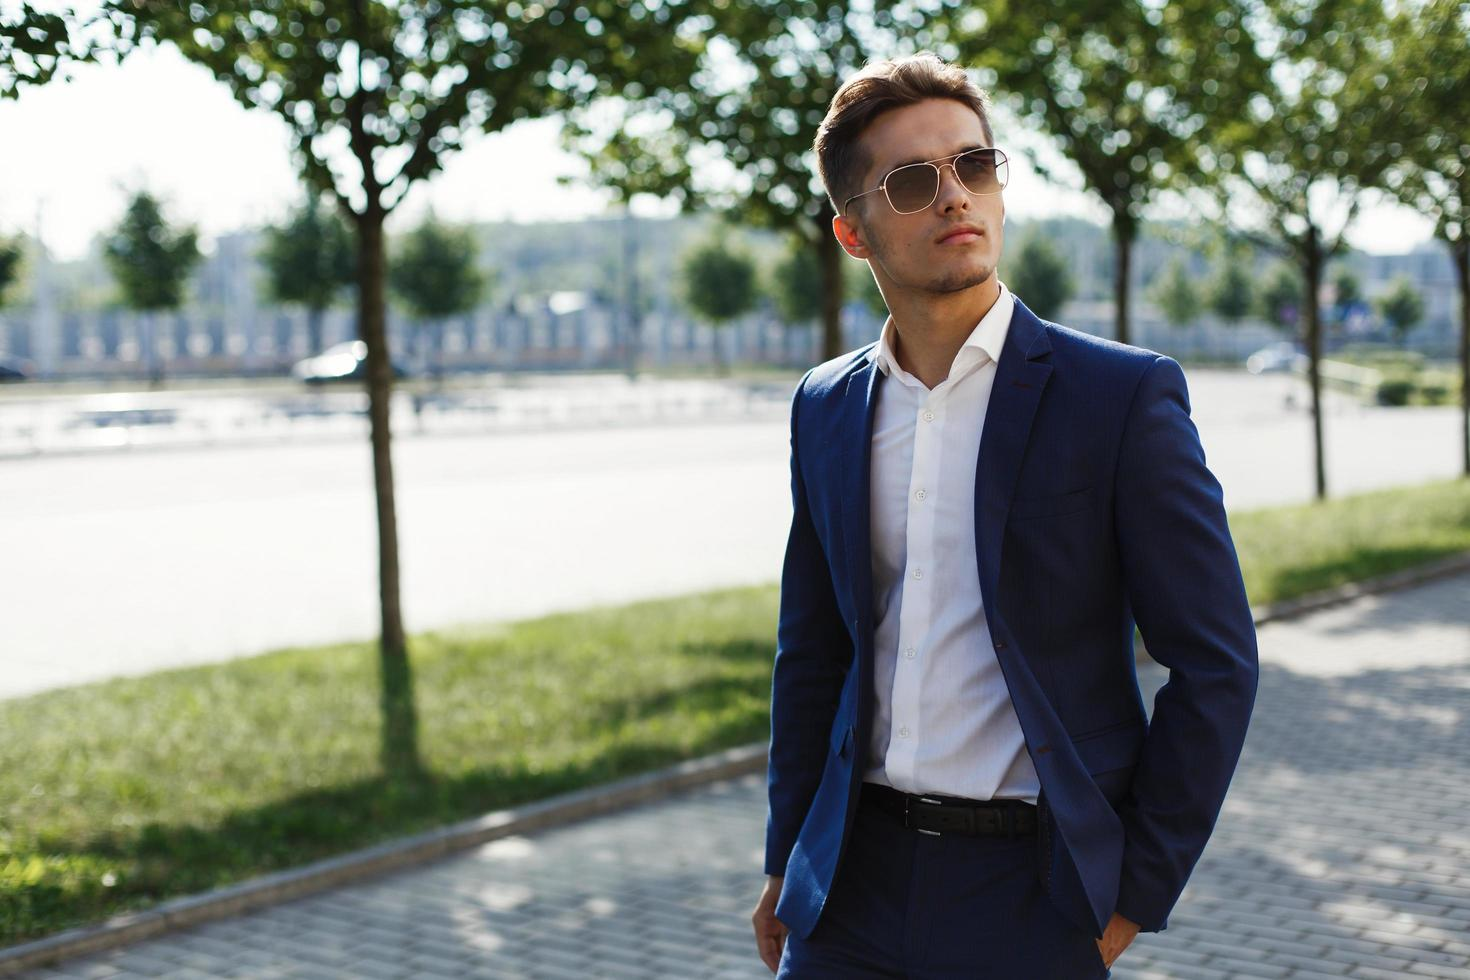 Handsome man in a business suit walks along the street photo